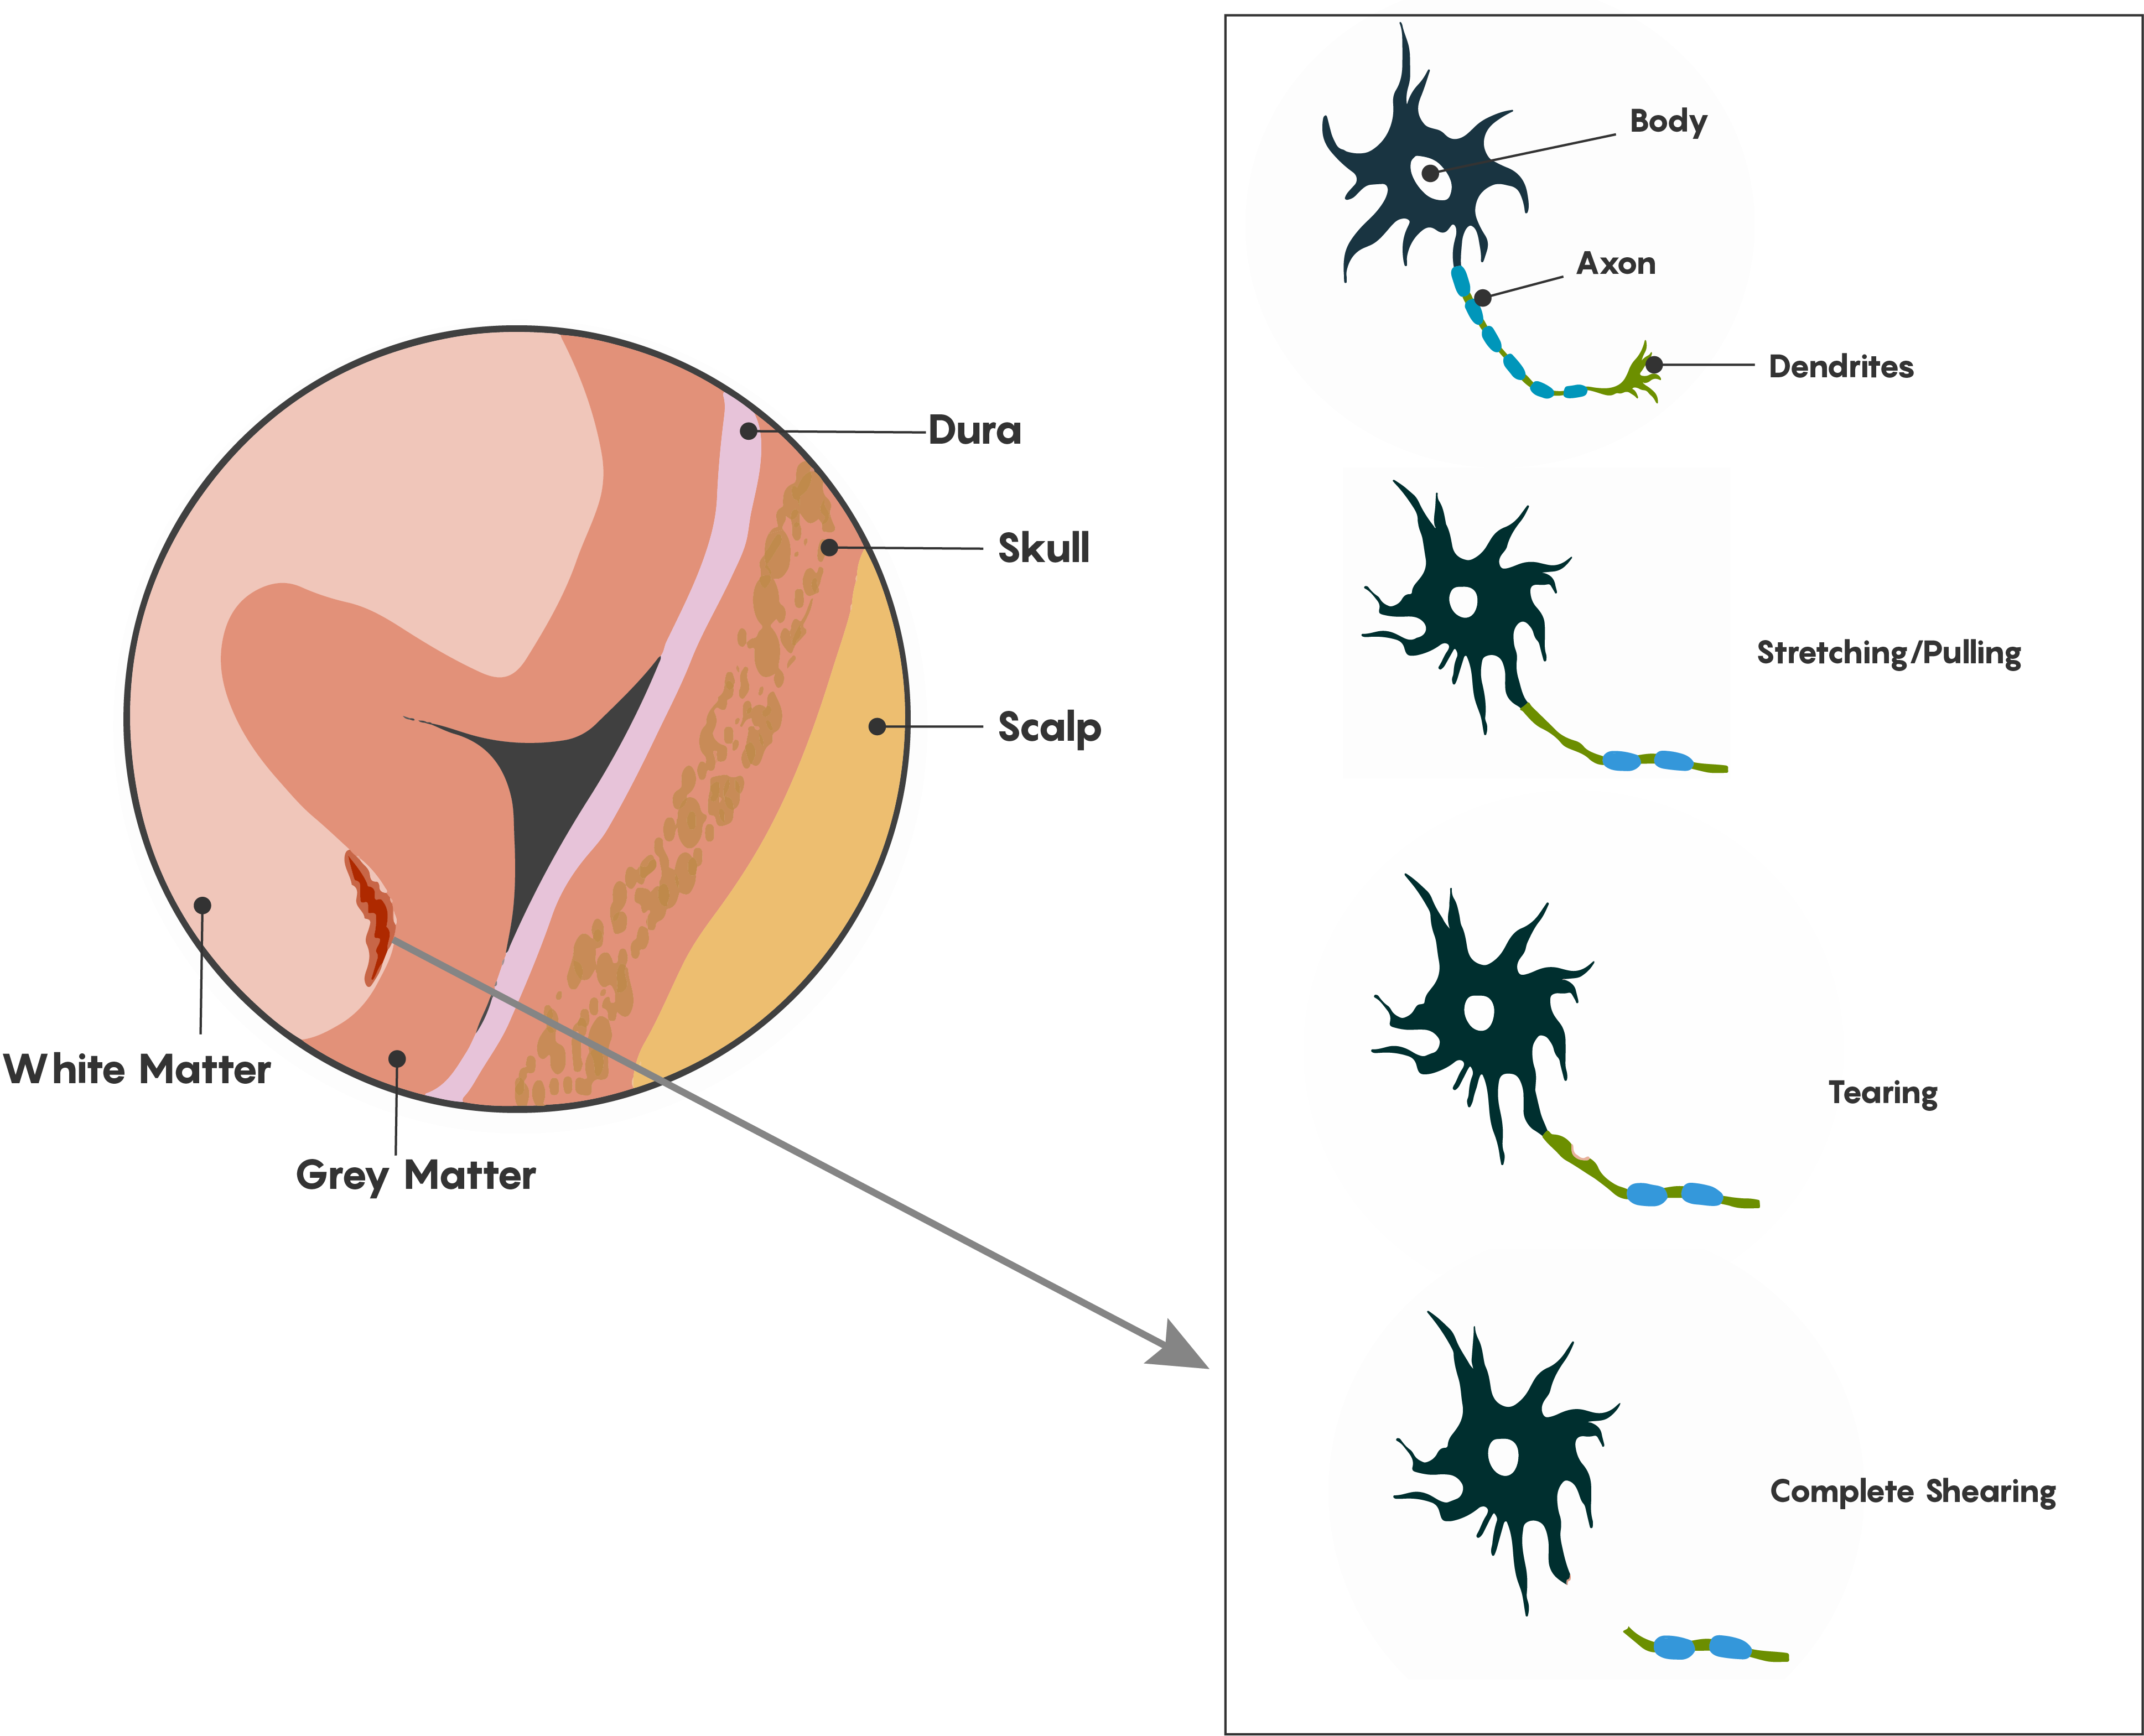 Schematic diagram of diffuse axonal injury following TBI/concussion.